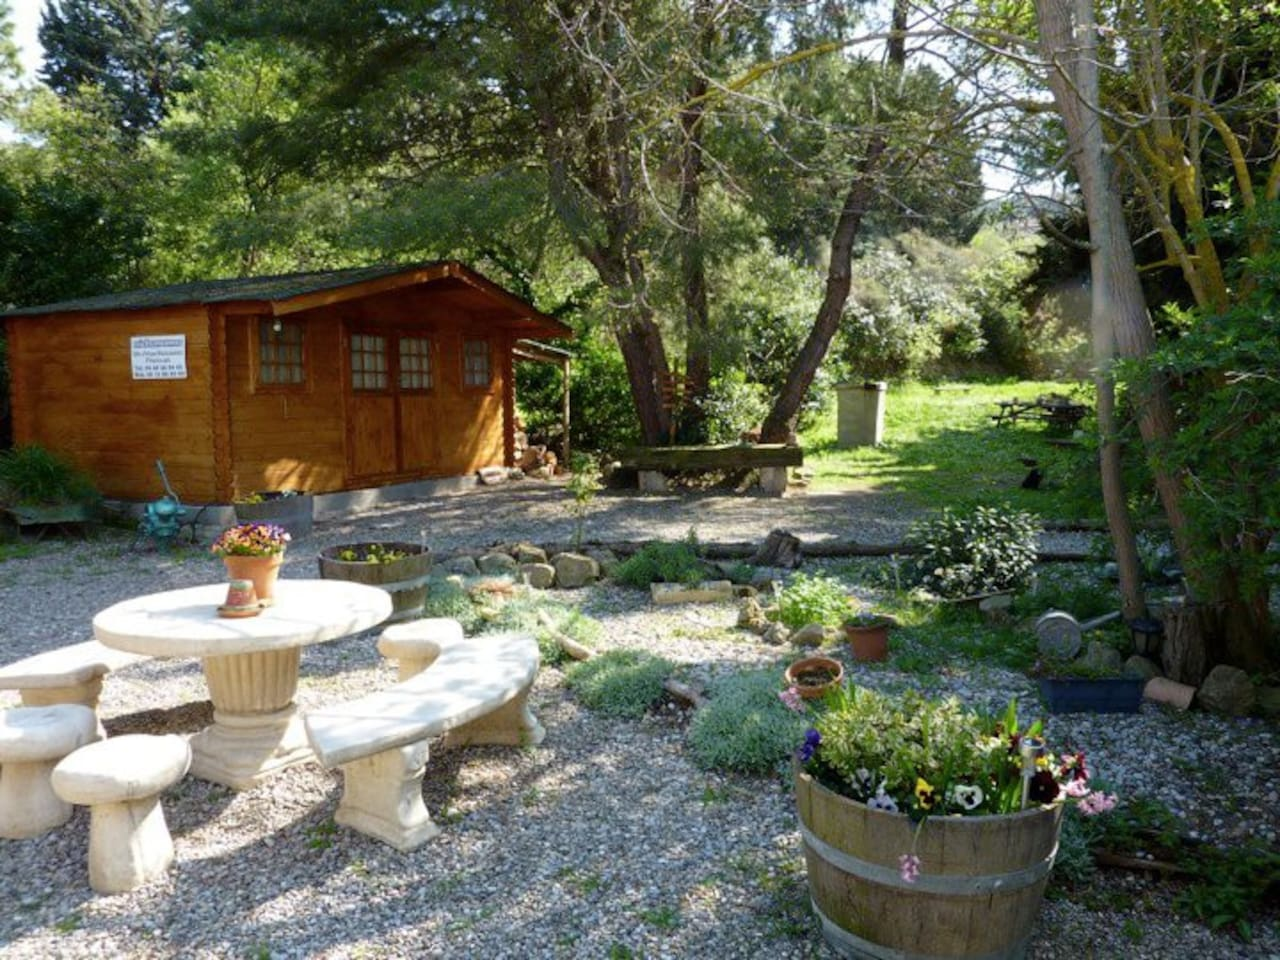 Sidsmums Travellers Retreat 6 bed Cabin with double bed situated in our beautiful garden